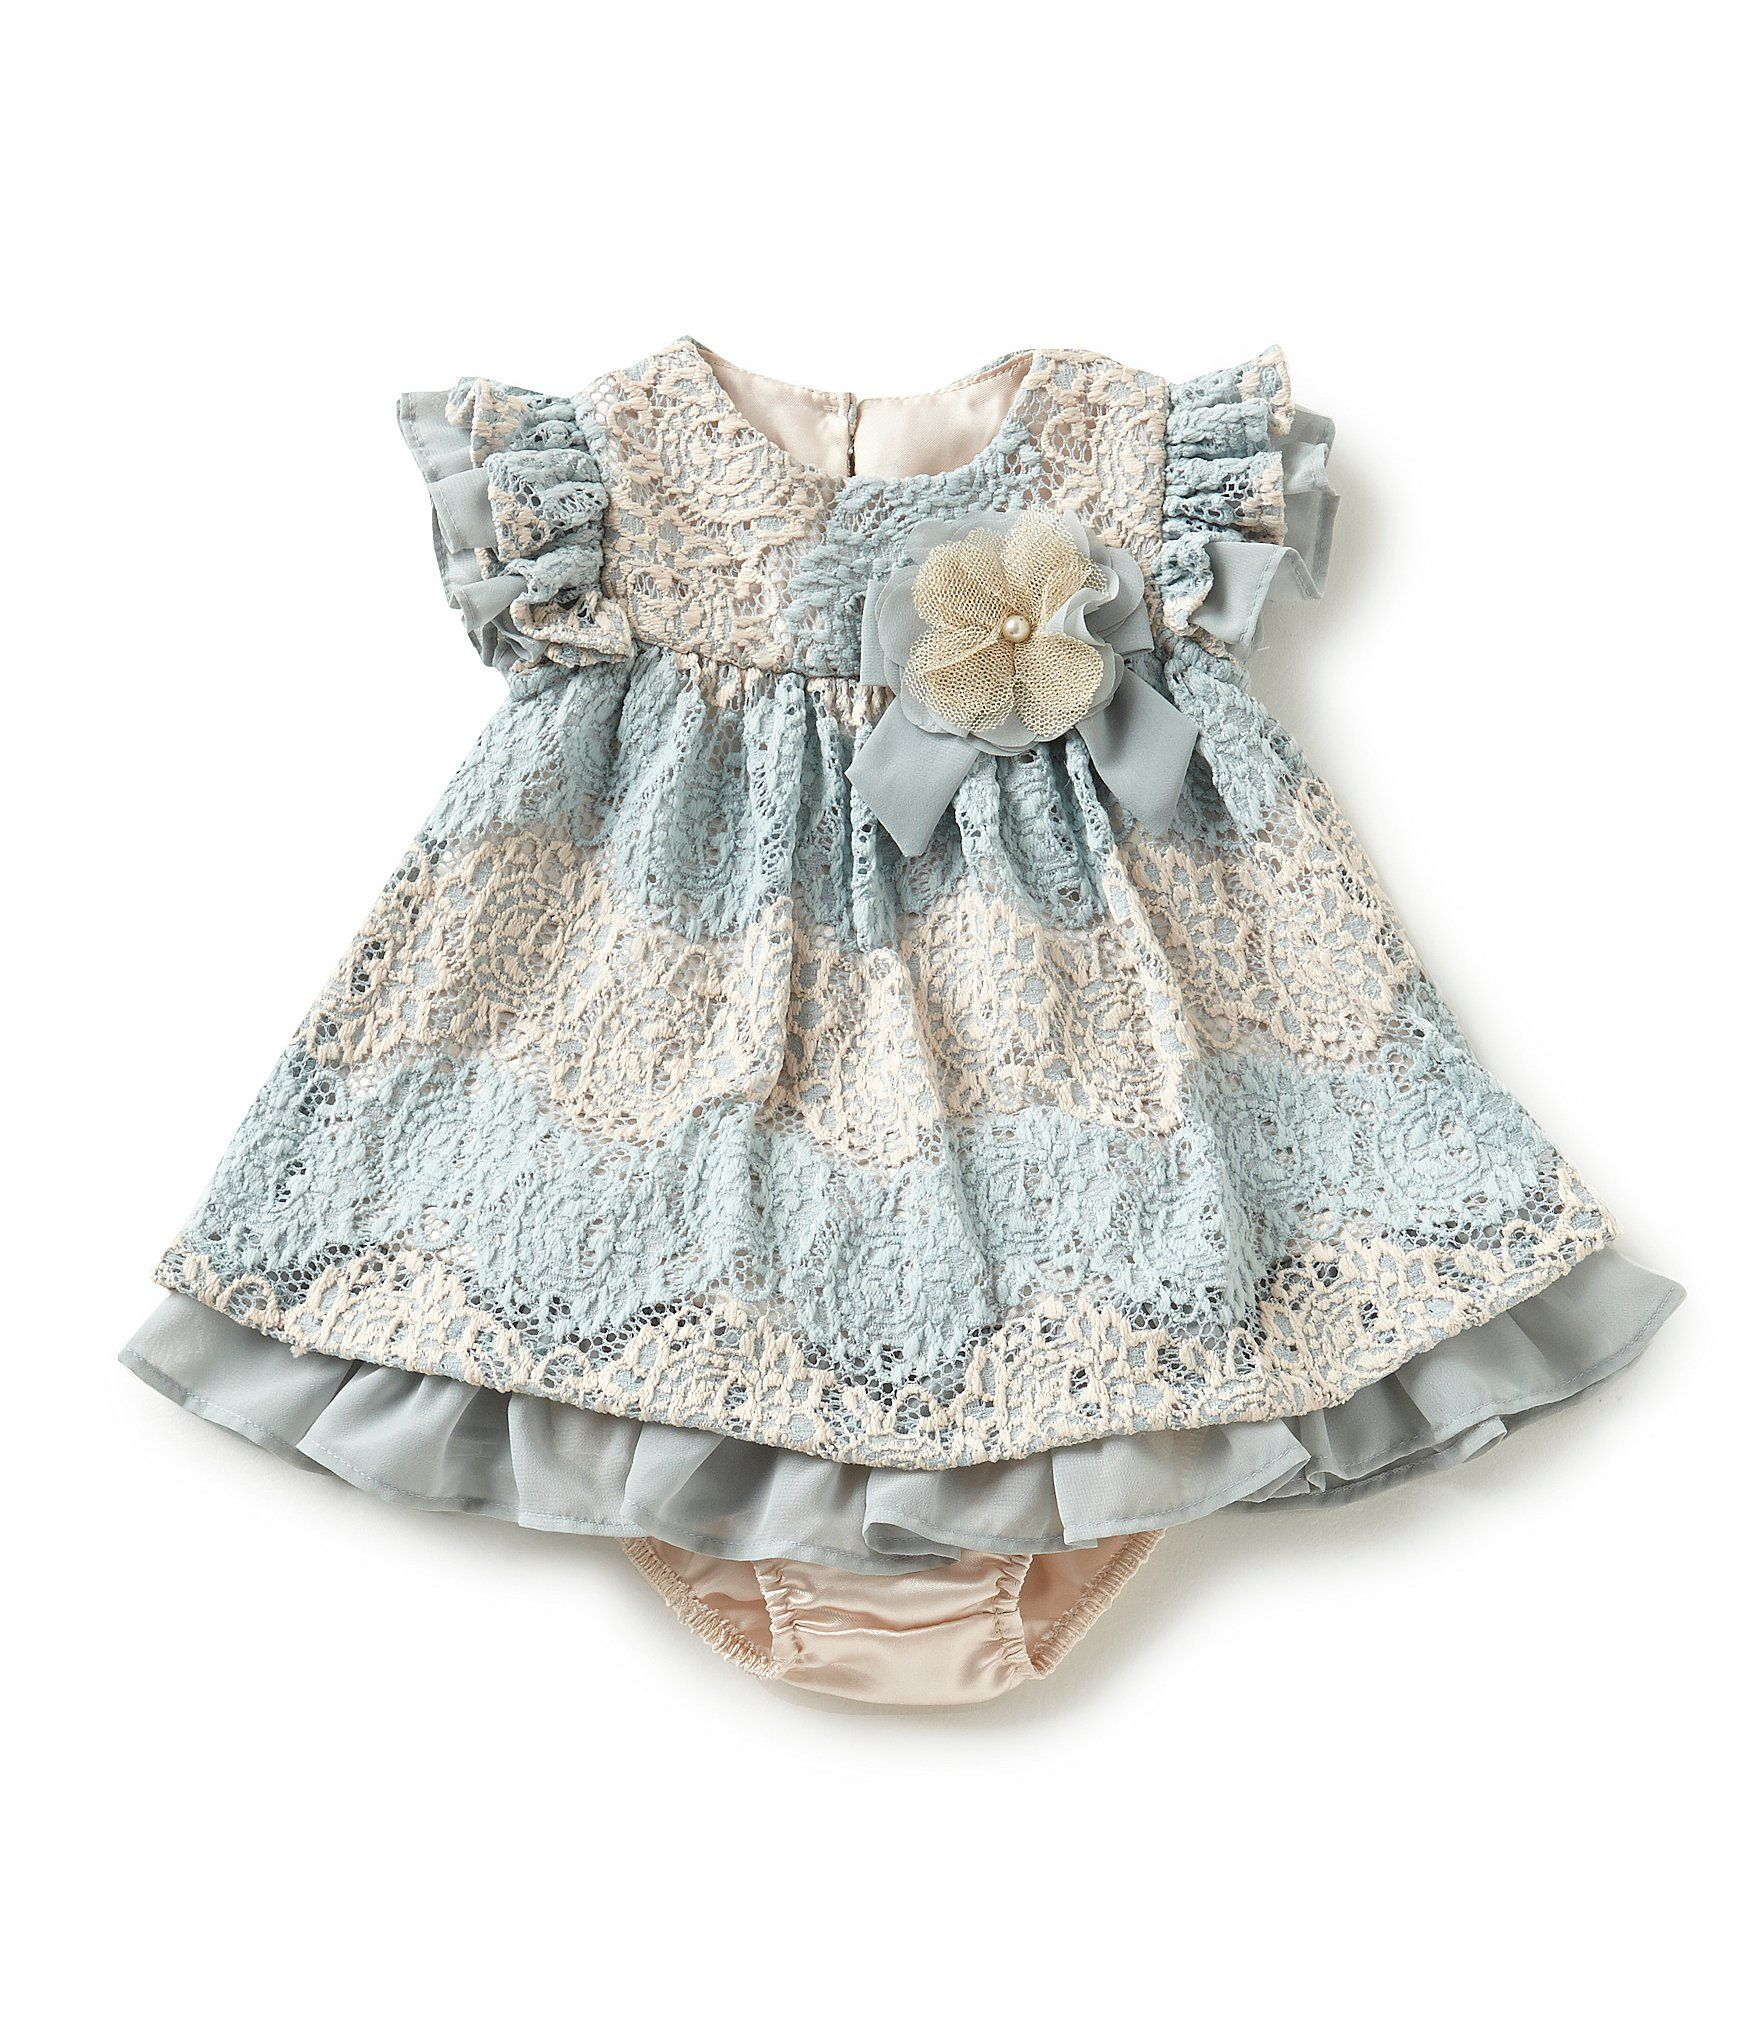 Shop for Bonnie Baby Baby Girls Newborn 24 Months Two Tone Lace